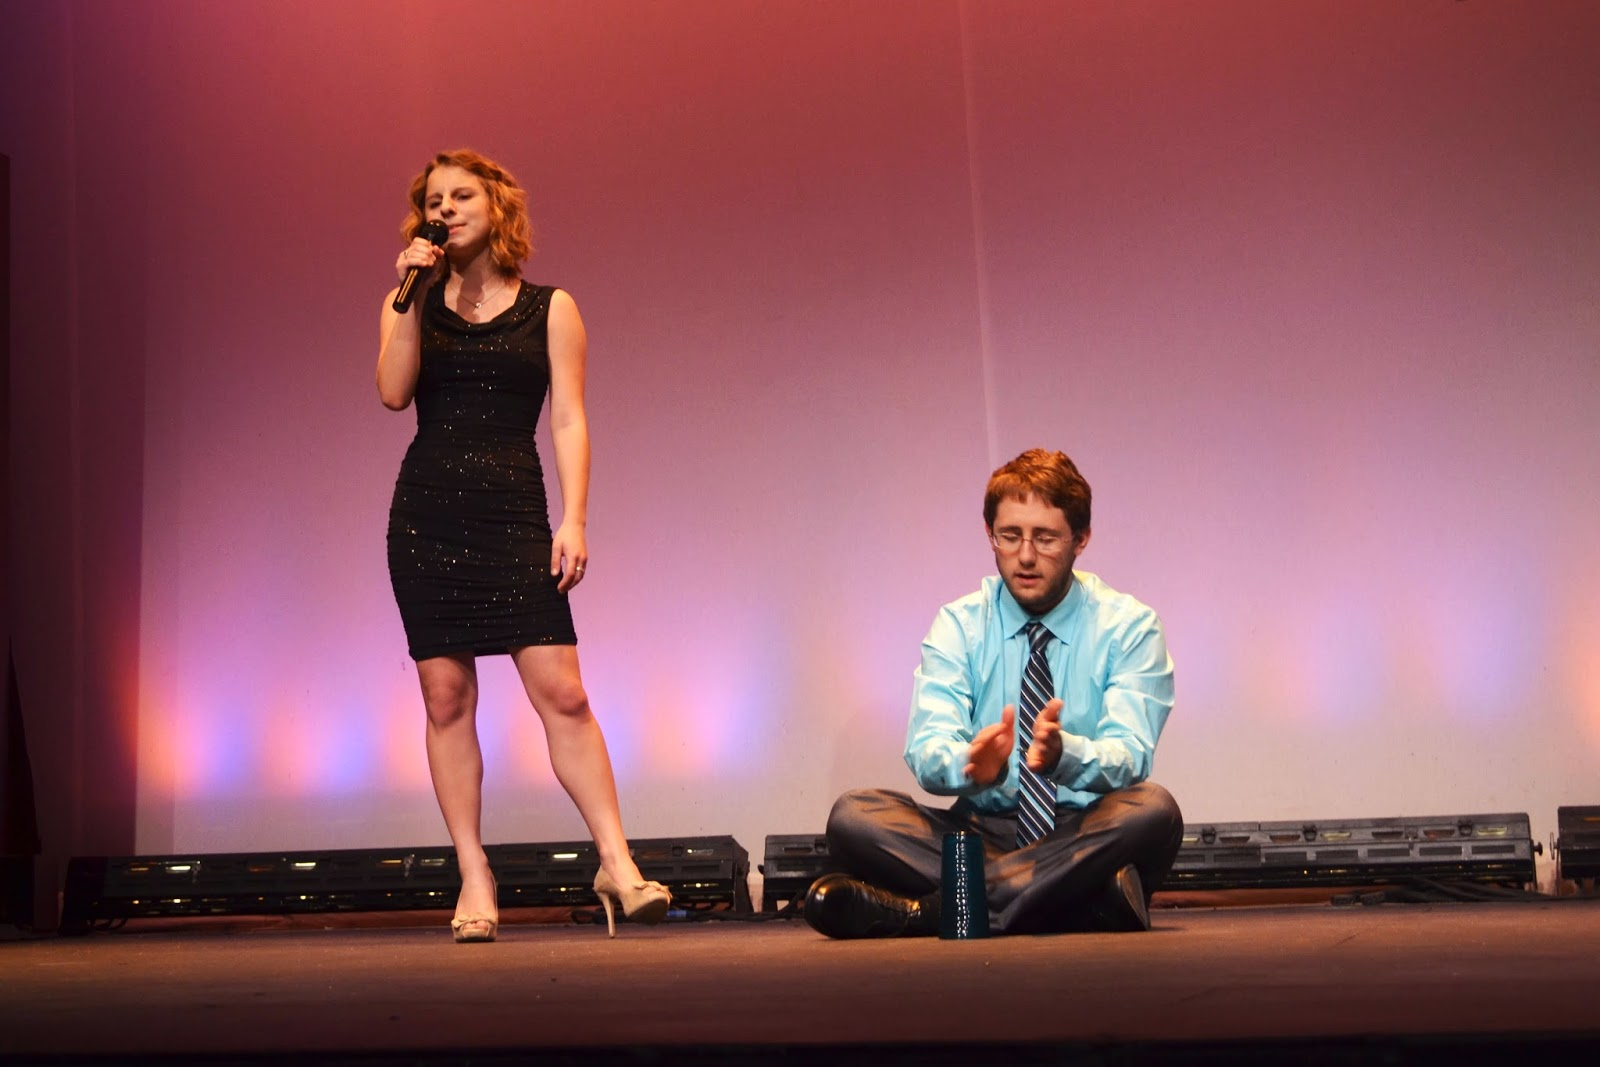 Katie and Cody preforming